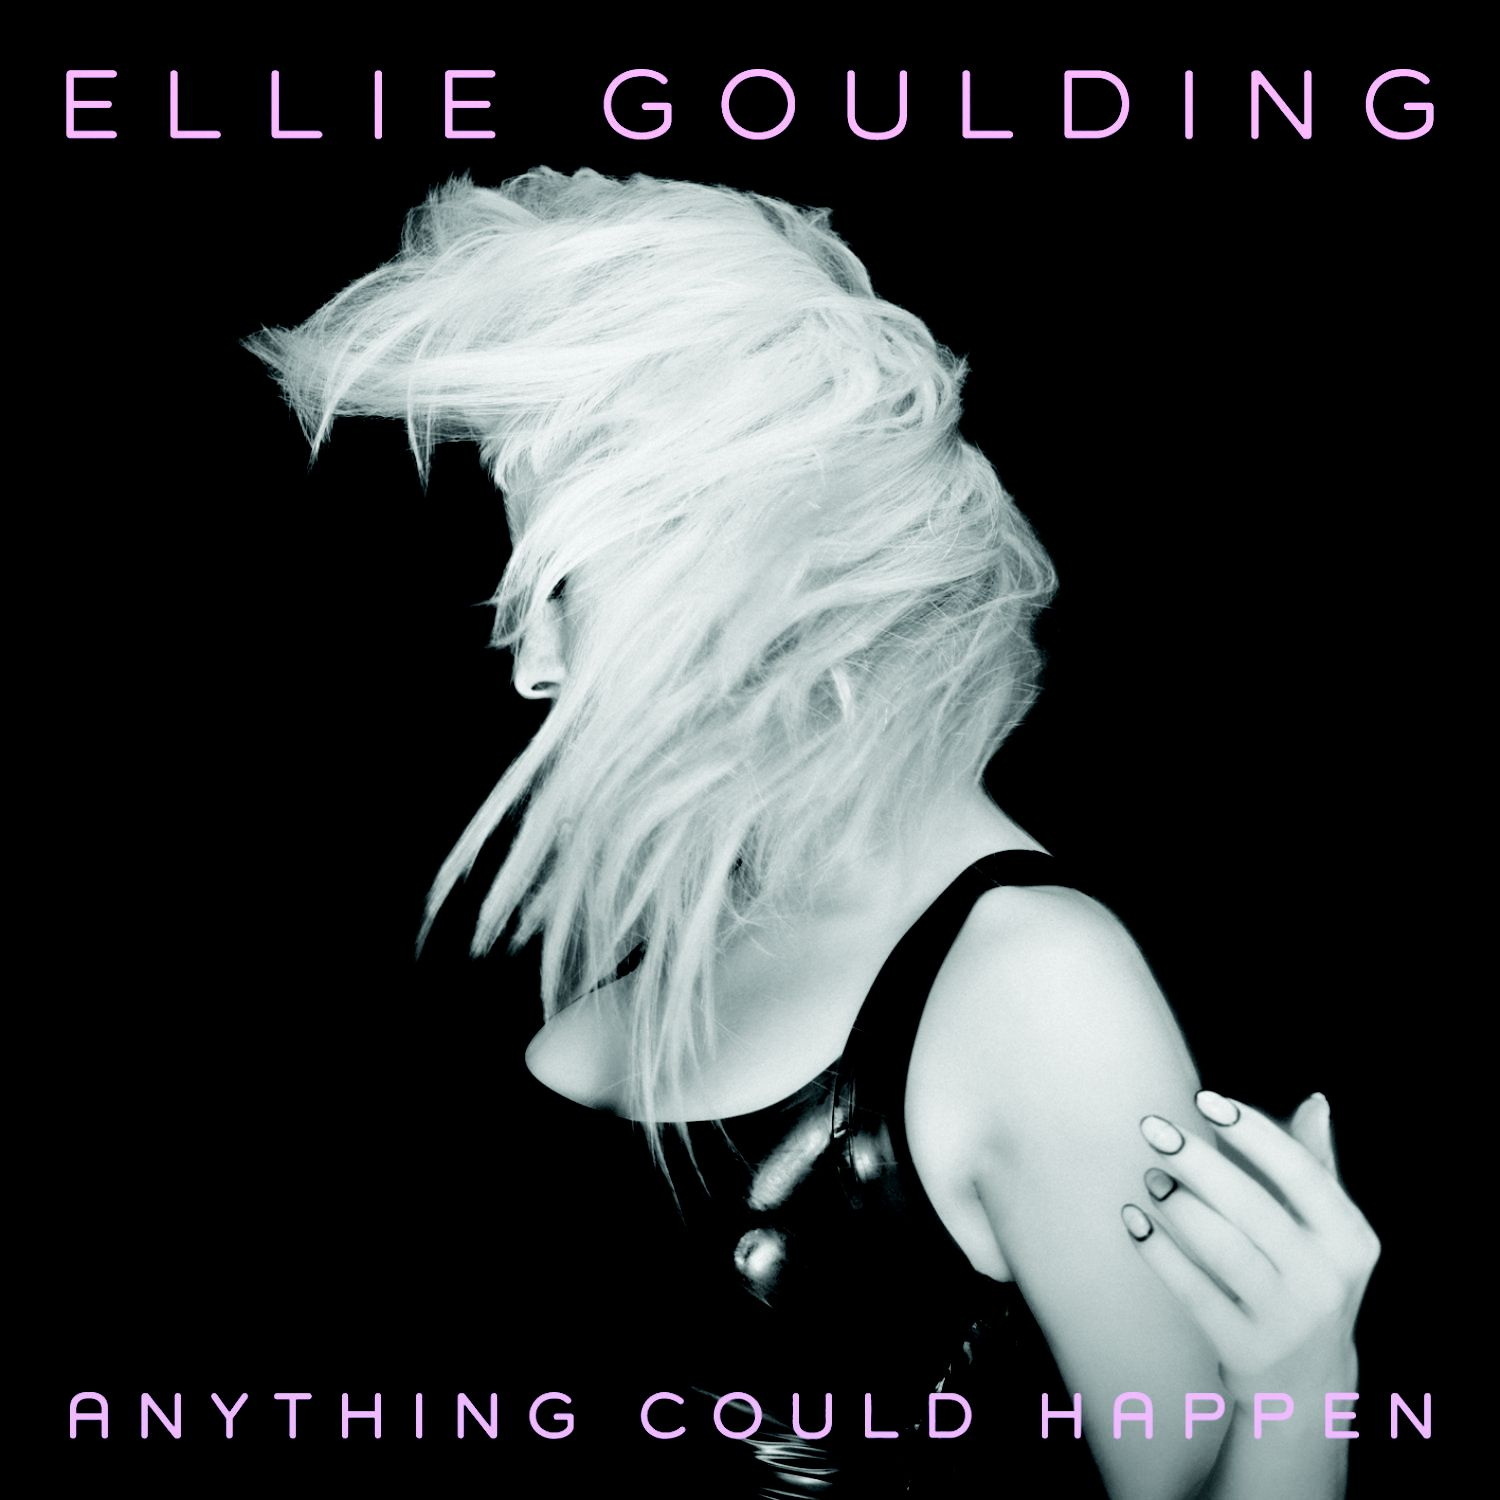 Top 10 Best Ellie Goulding Songs